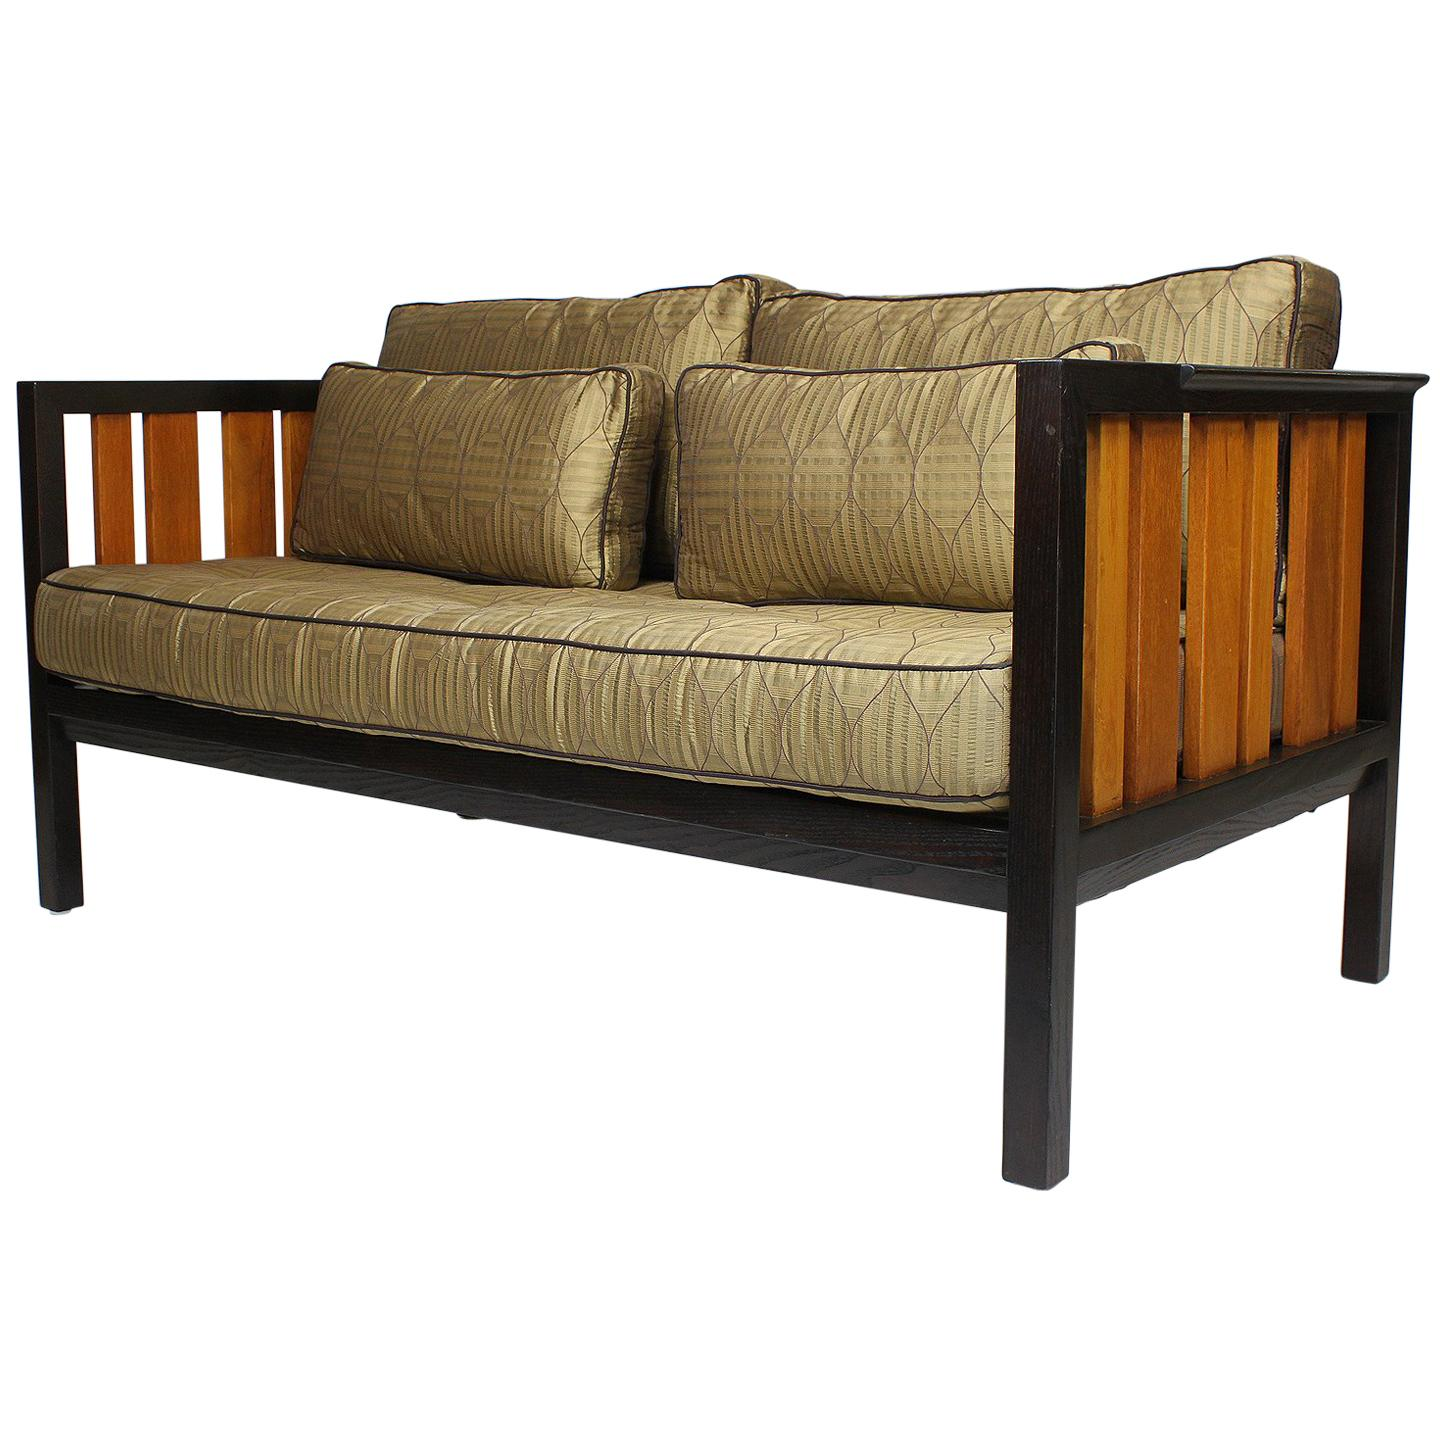 Rare Mahogany and Ash Loveseat, Settee Designed by Edward Wormley for Dunbar